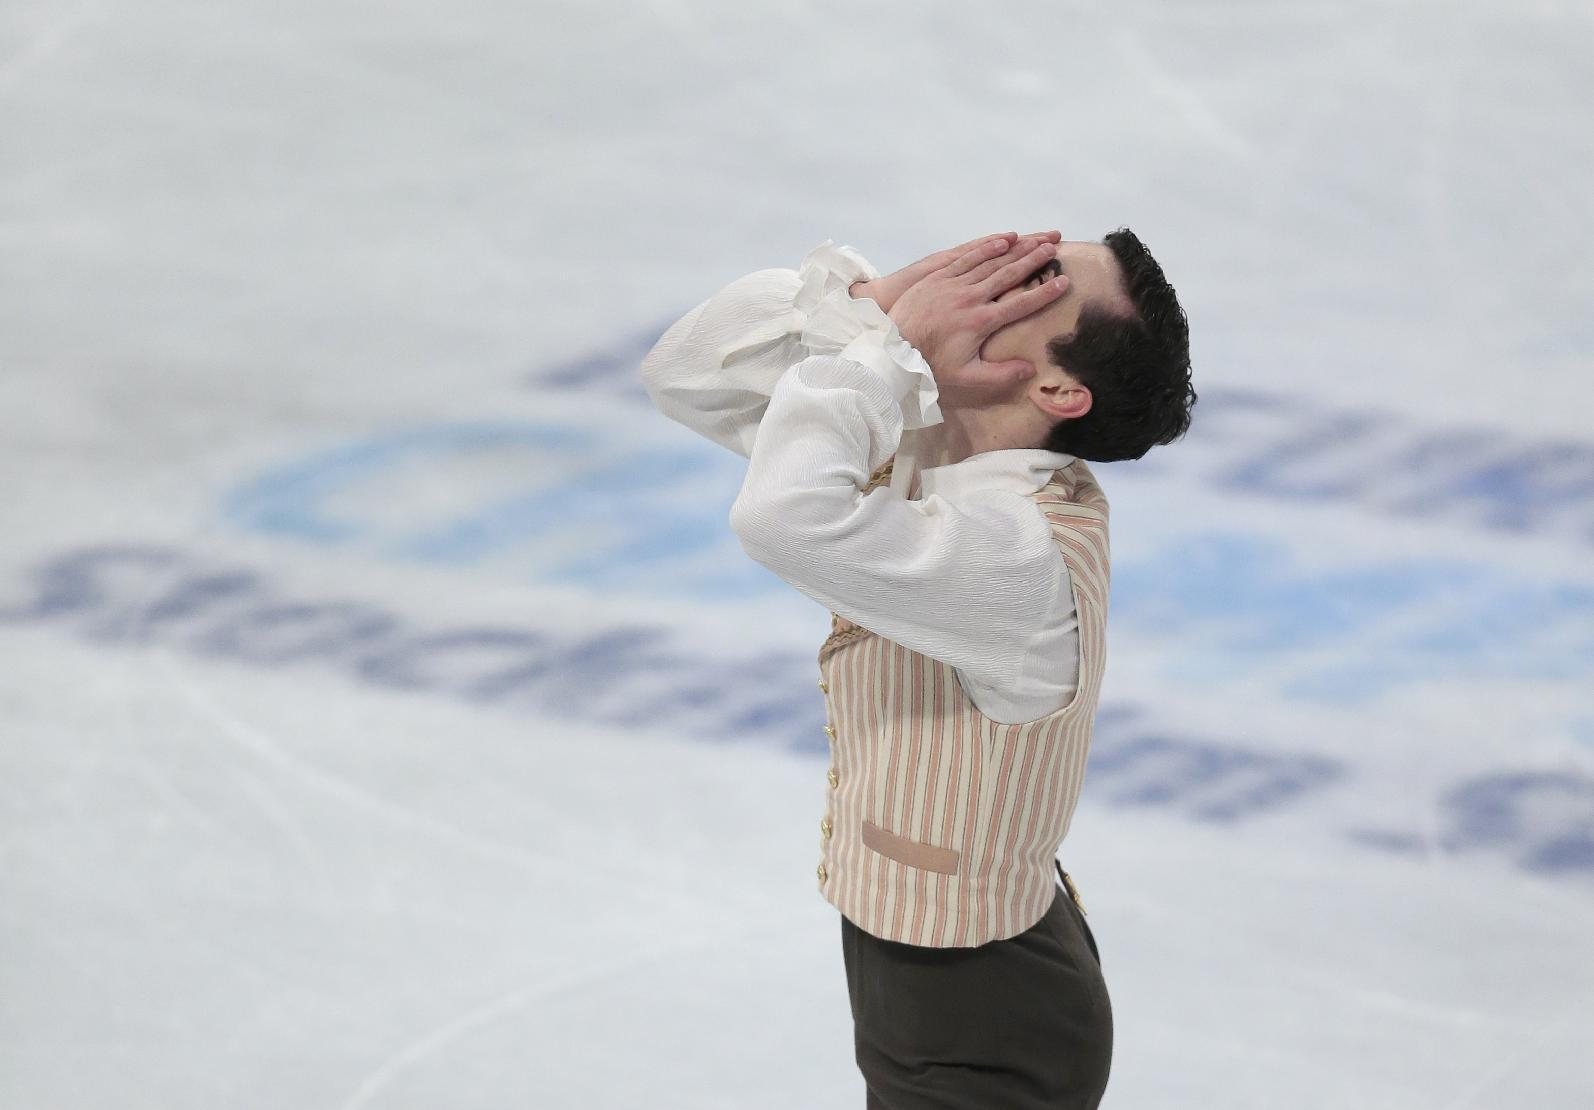 Fernandez wins 3rd European figure skating gold